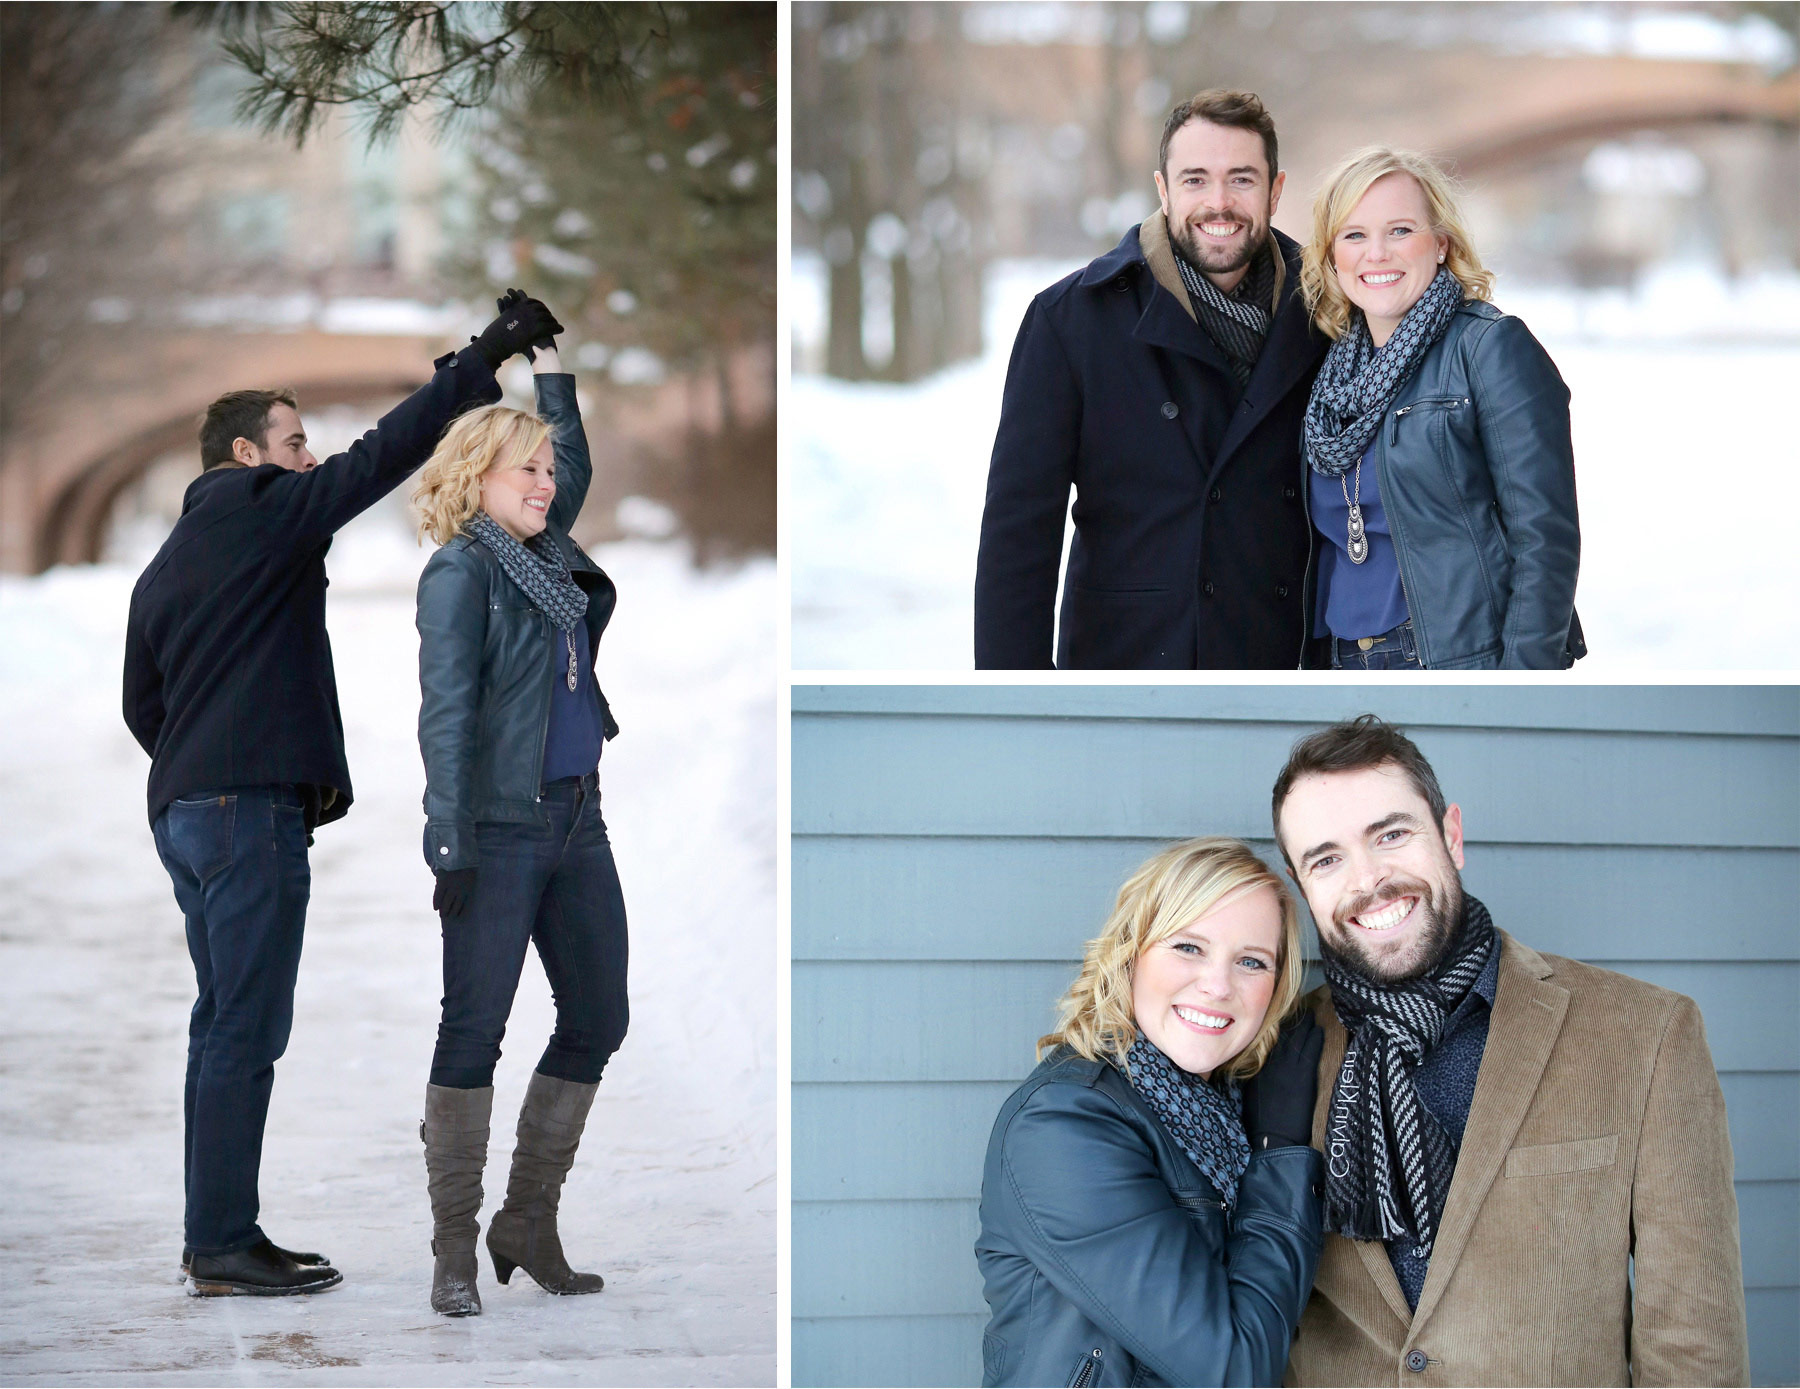 03-Edina-Minnesota-Wedding-Photographer-by-Andrew-Vick-Photography-Winter-Engagement-Bride-Groom-Snow-Twirl-Embrace-Heather-and-Rob.jpg